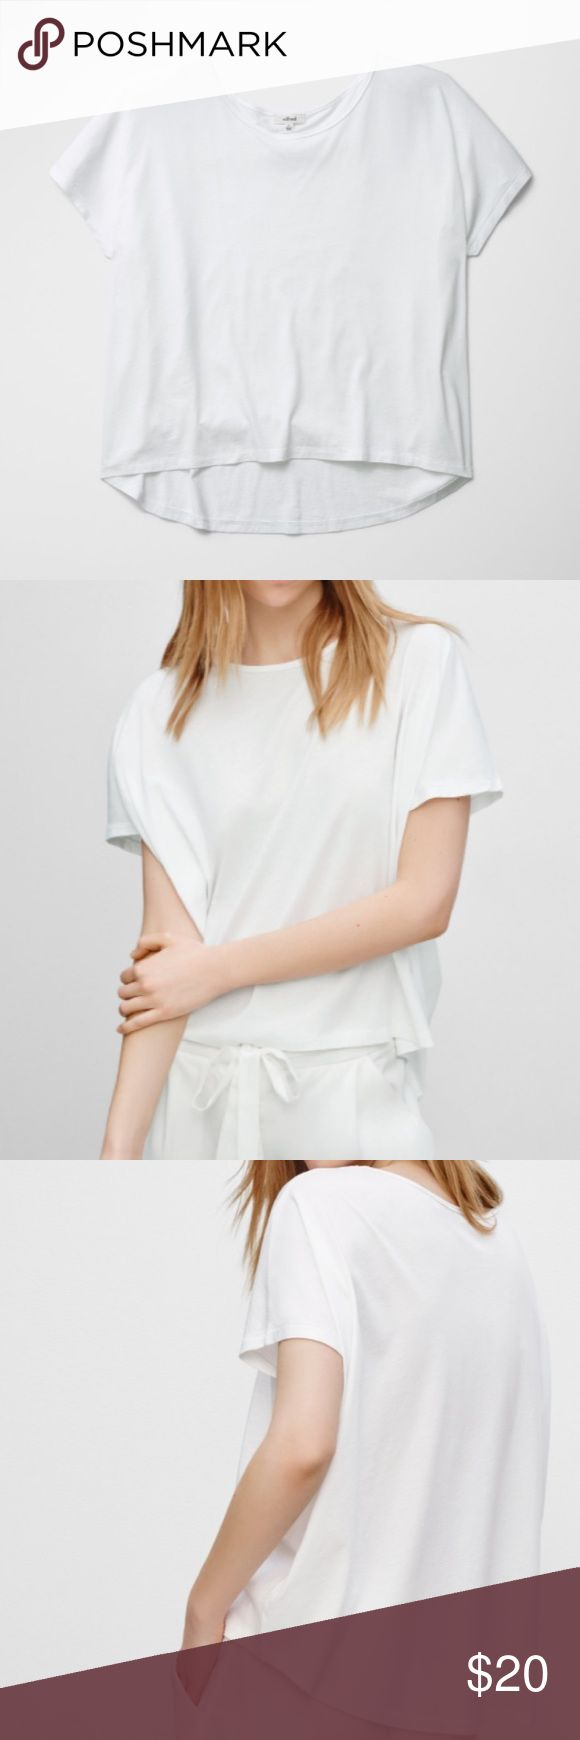 Aritzia Wilfred Berlioz T-Shirt This crisp, shite shirt is made with a nice Pima cotton blend. Also has a wide boatneck with loose sleeves (relaxed fit). Subtly hangs lower in the backs. Materials: 60% Pima cotton and 40% micromodal. Size XXS and never worn ~~ HAPPY POSHING :-) Aritzia Tops Tees - Short Sleeve